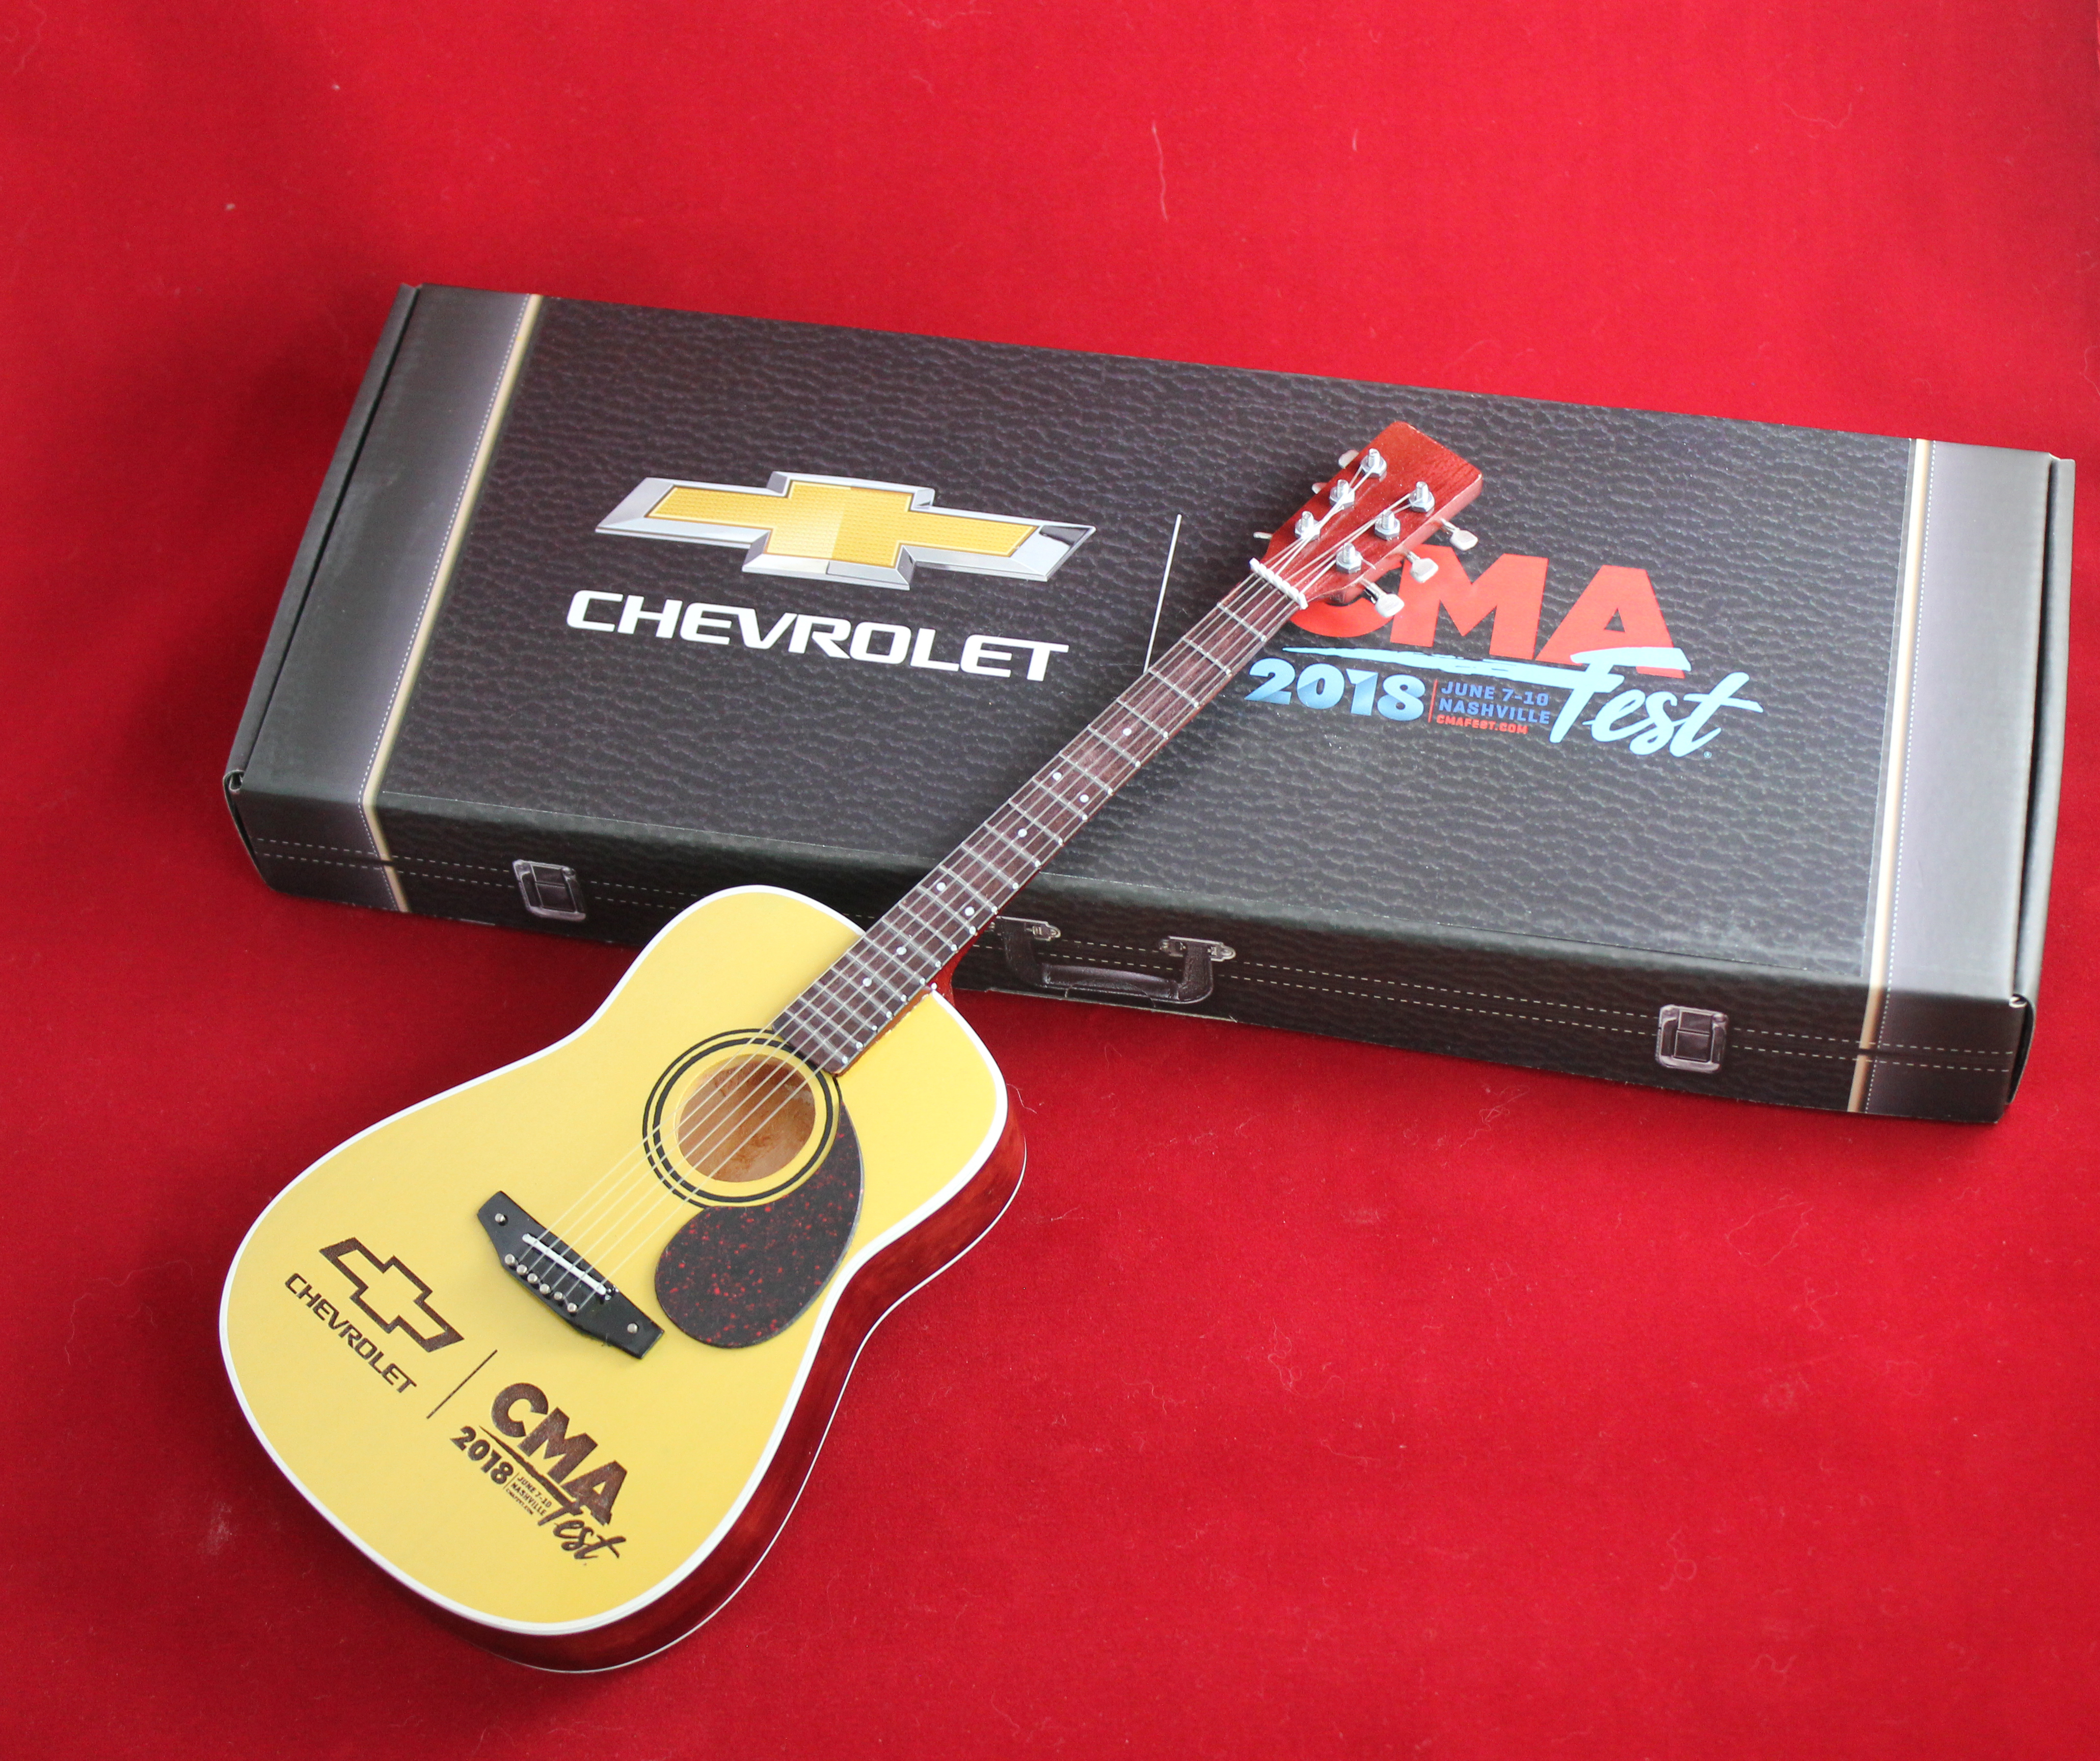 Laser-Engraved Acoustic Mini Guitar for Chevrolet at CMA